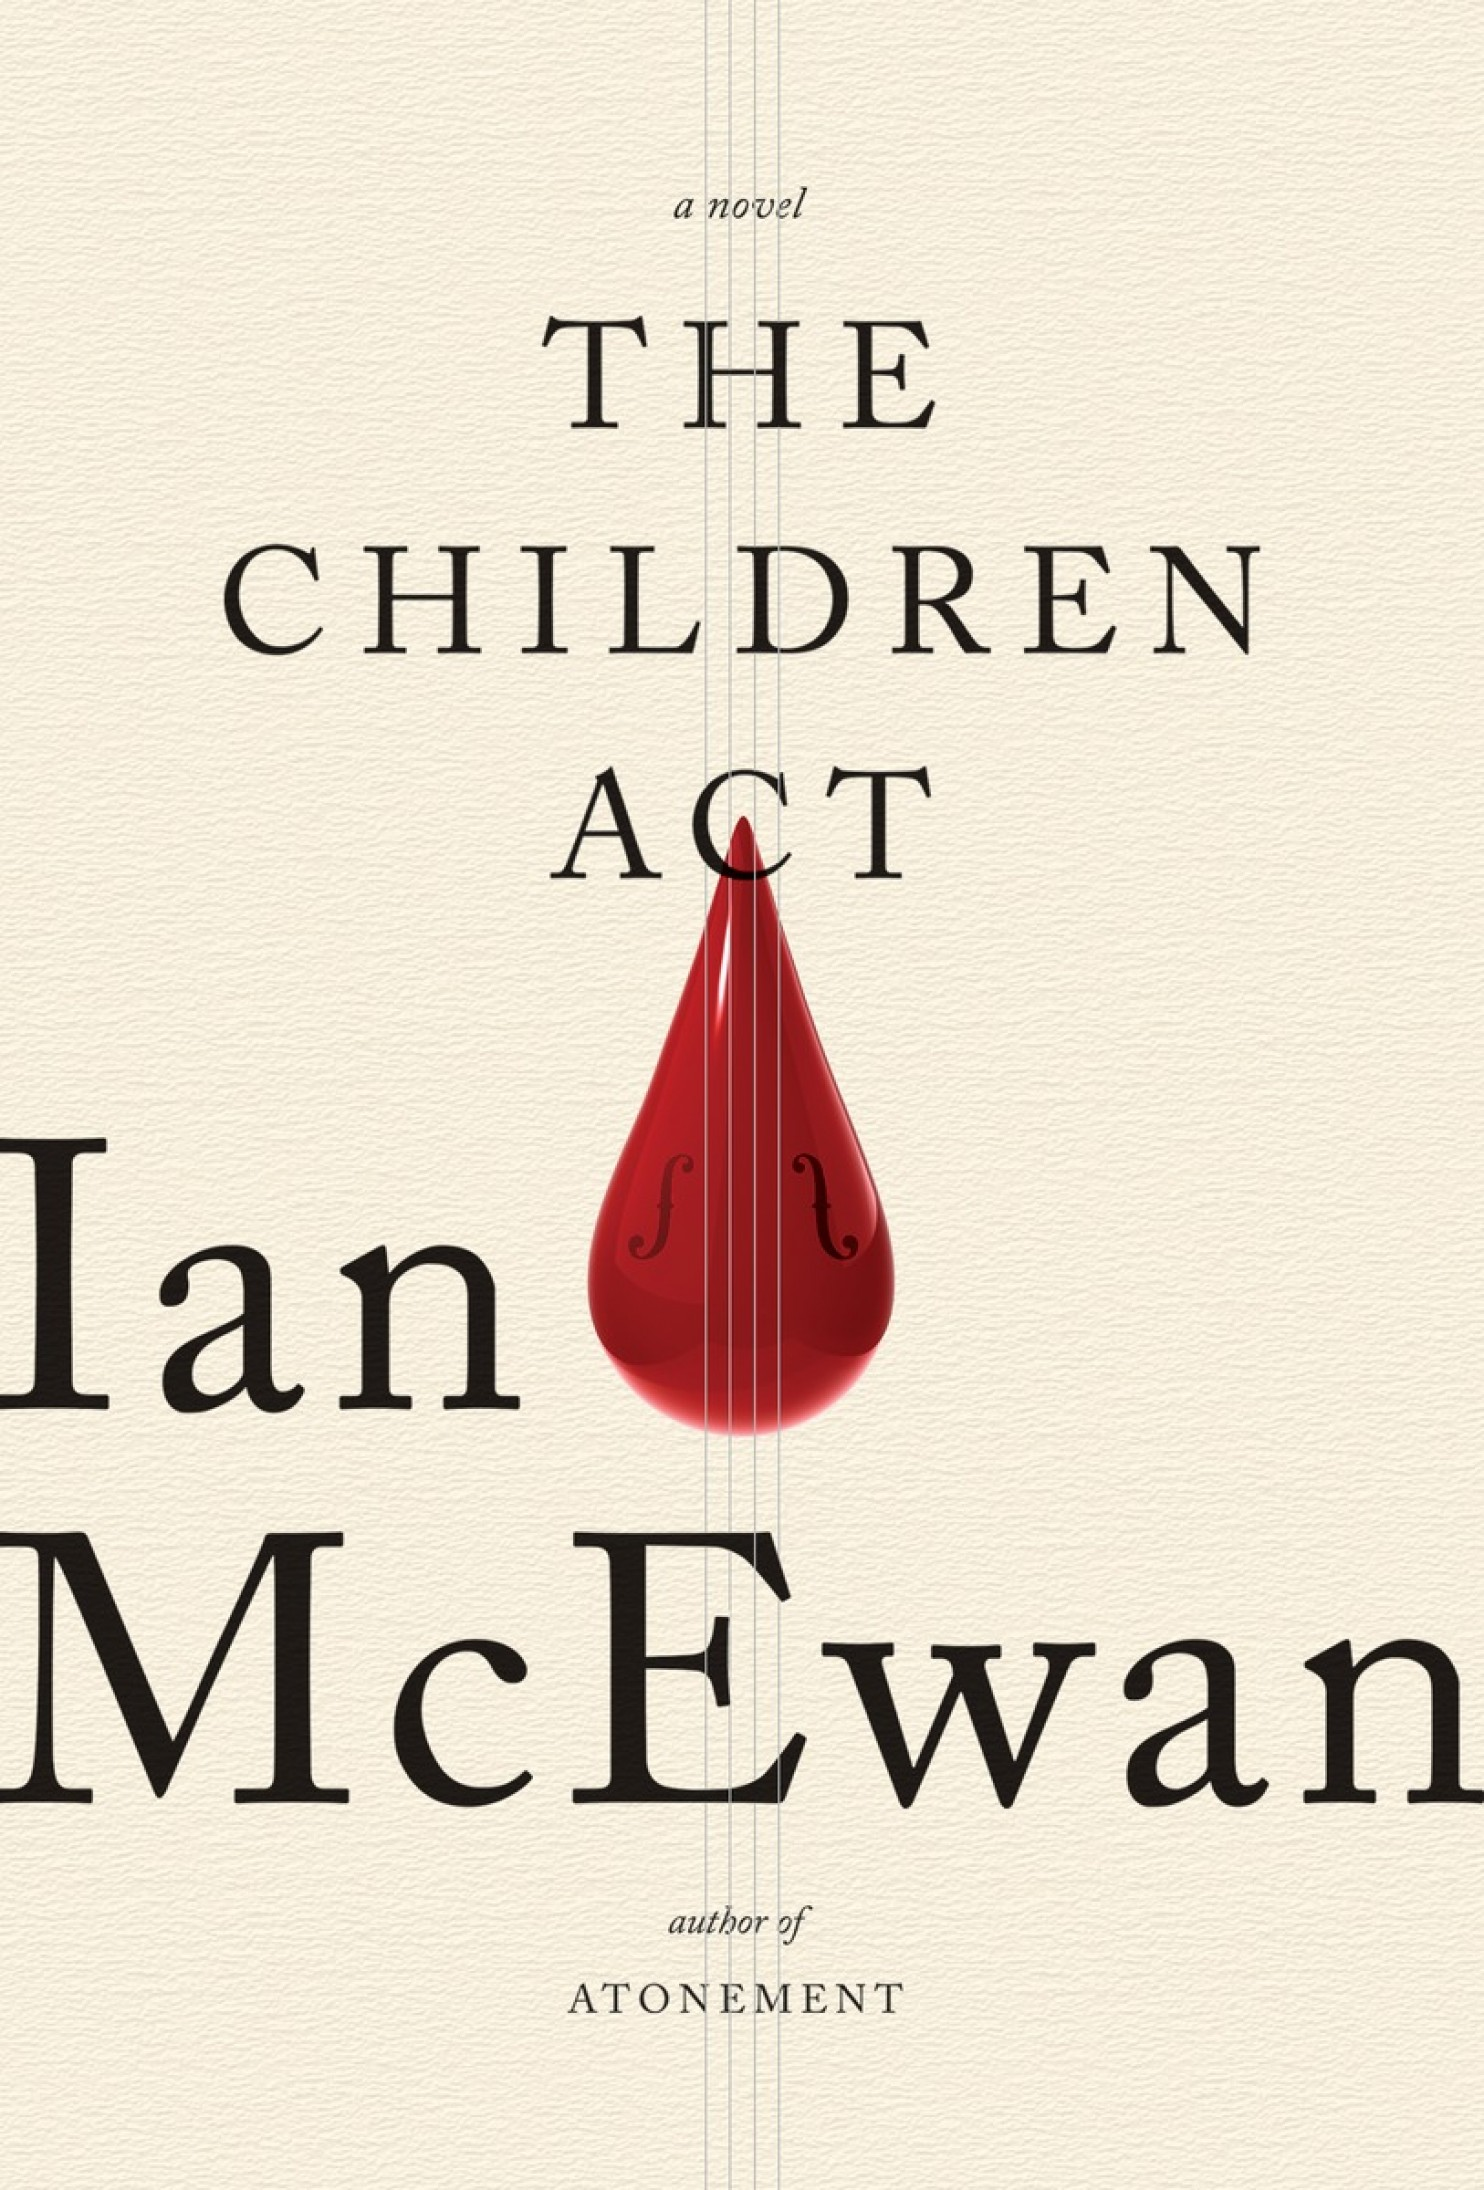 The Children Act book cover photo